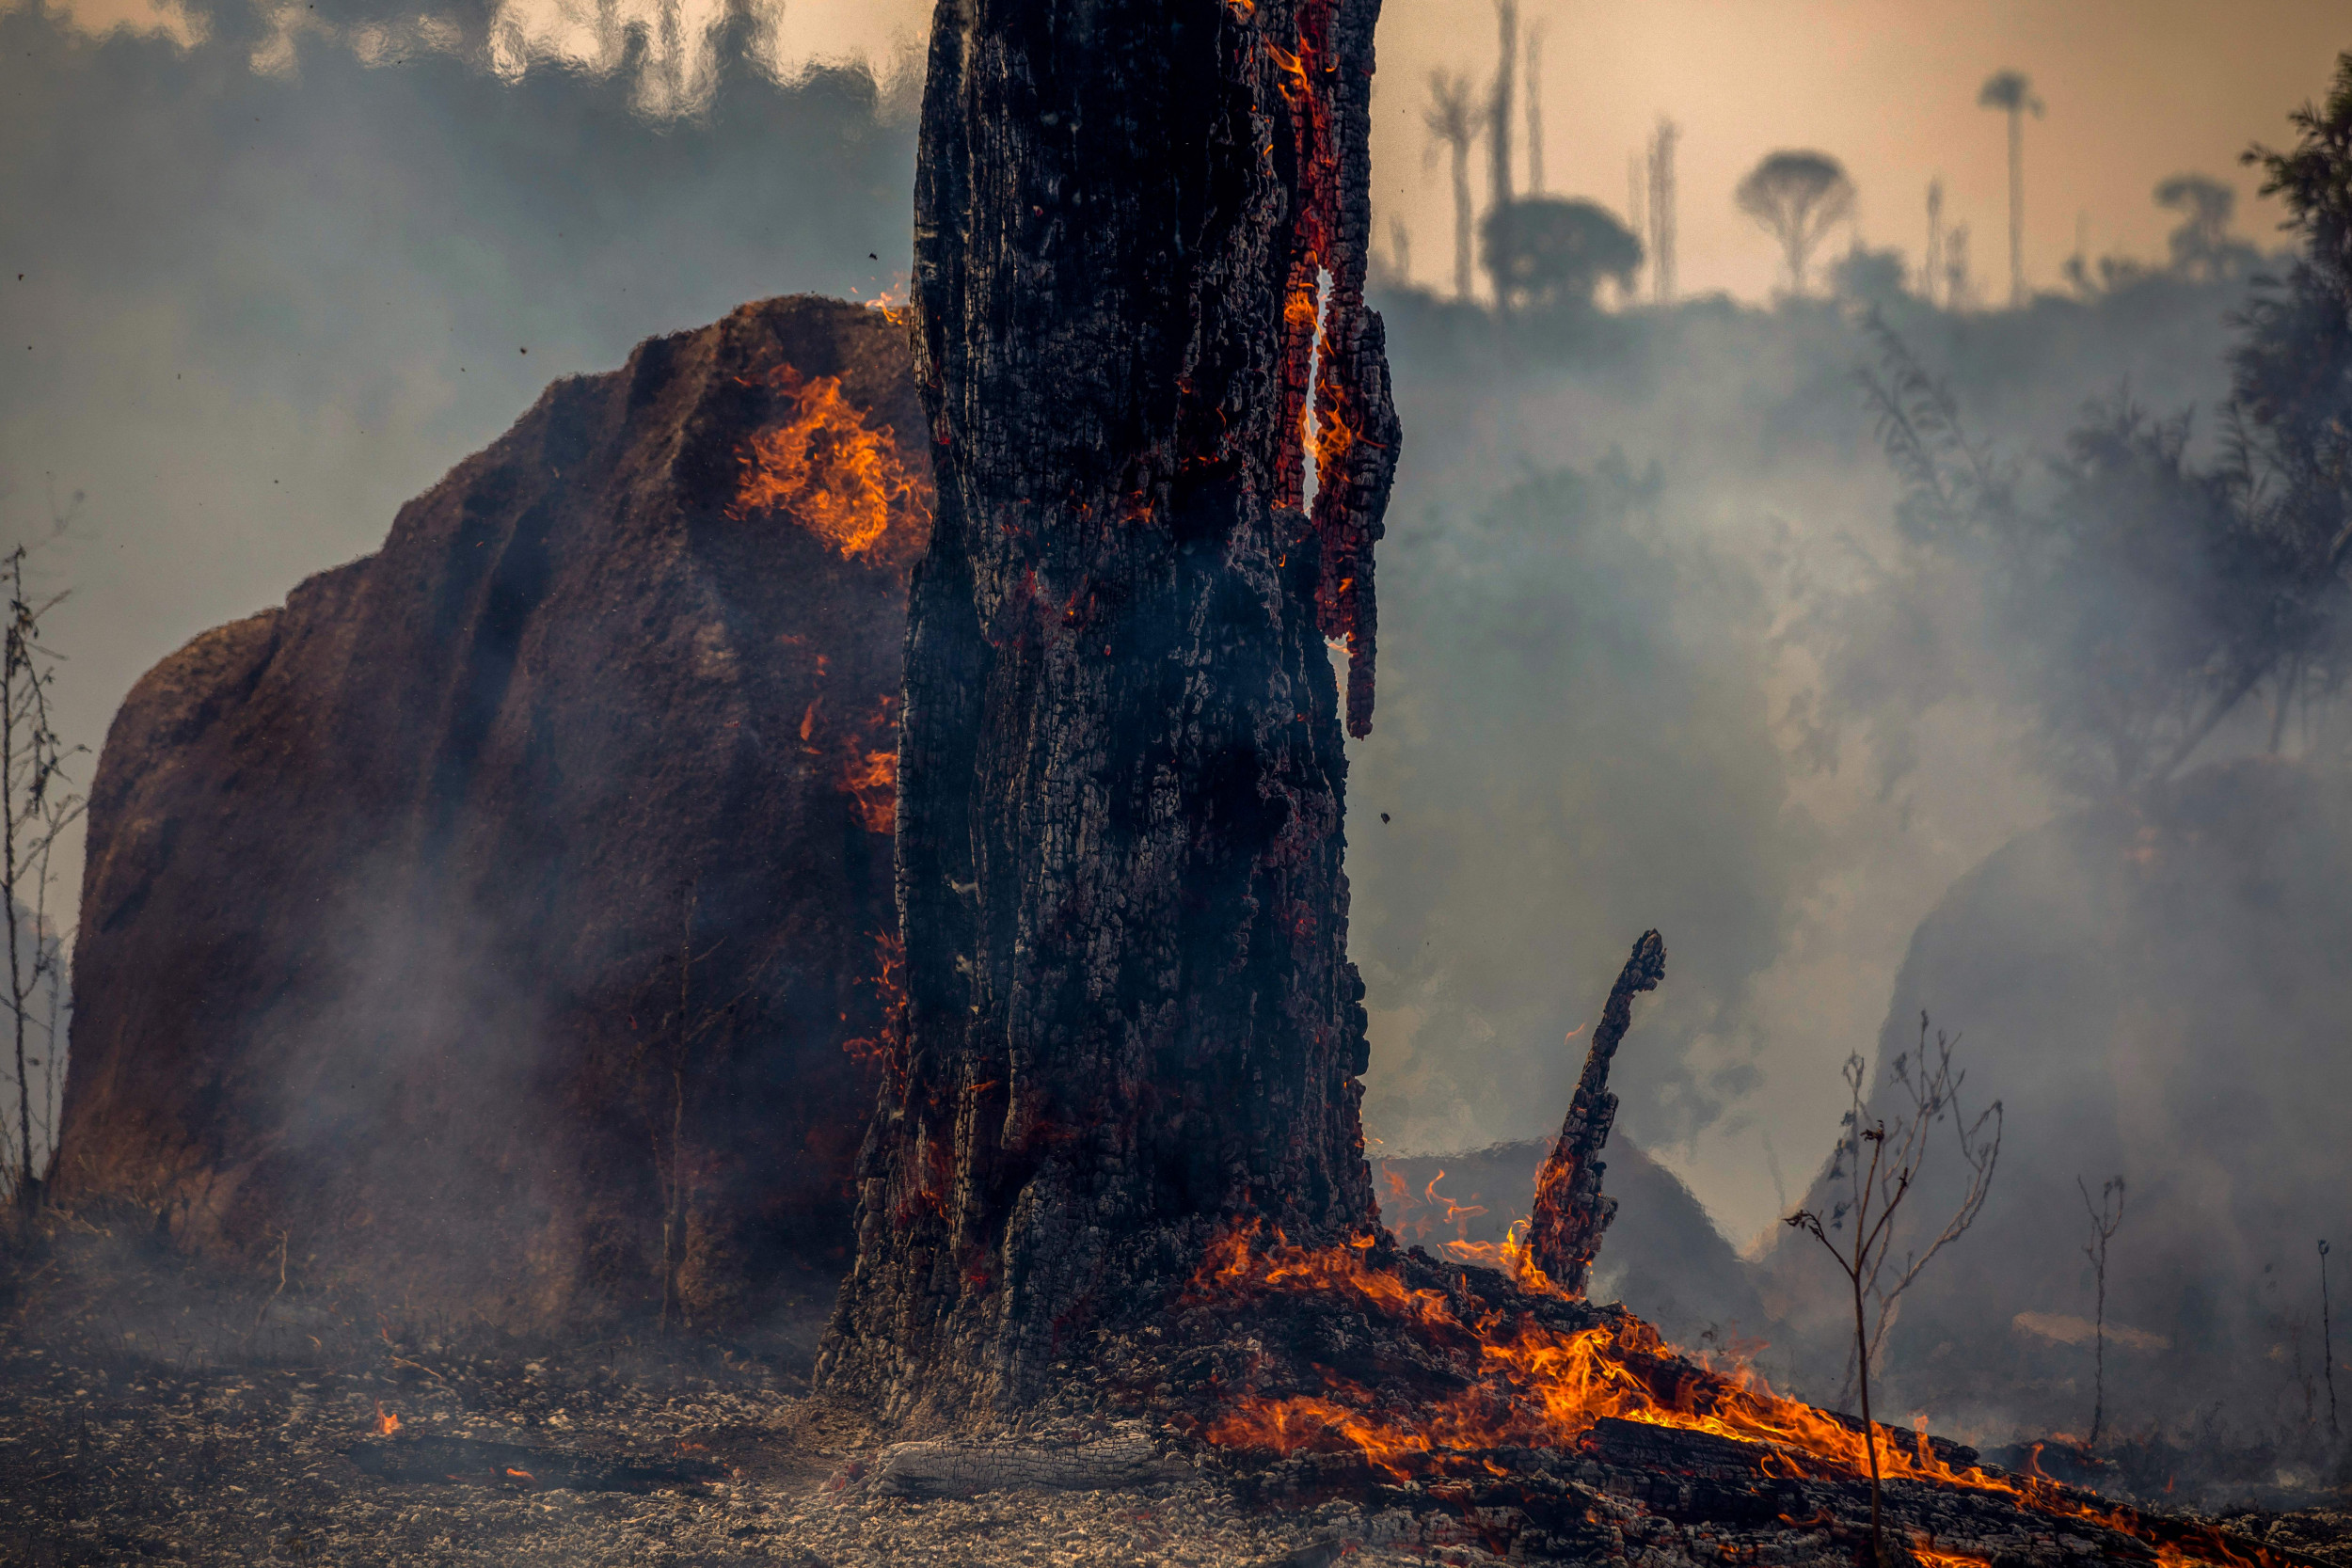 Amazon Rainforest Fires Are Only Going To Get Worse Opinion